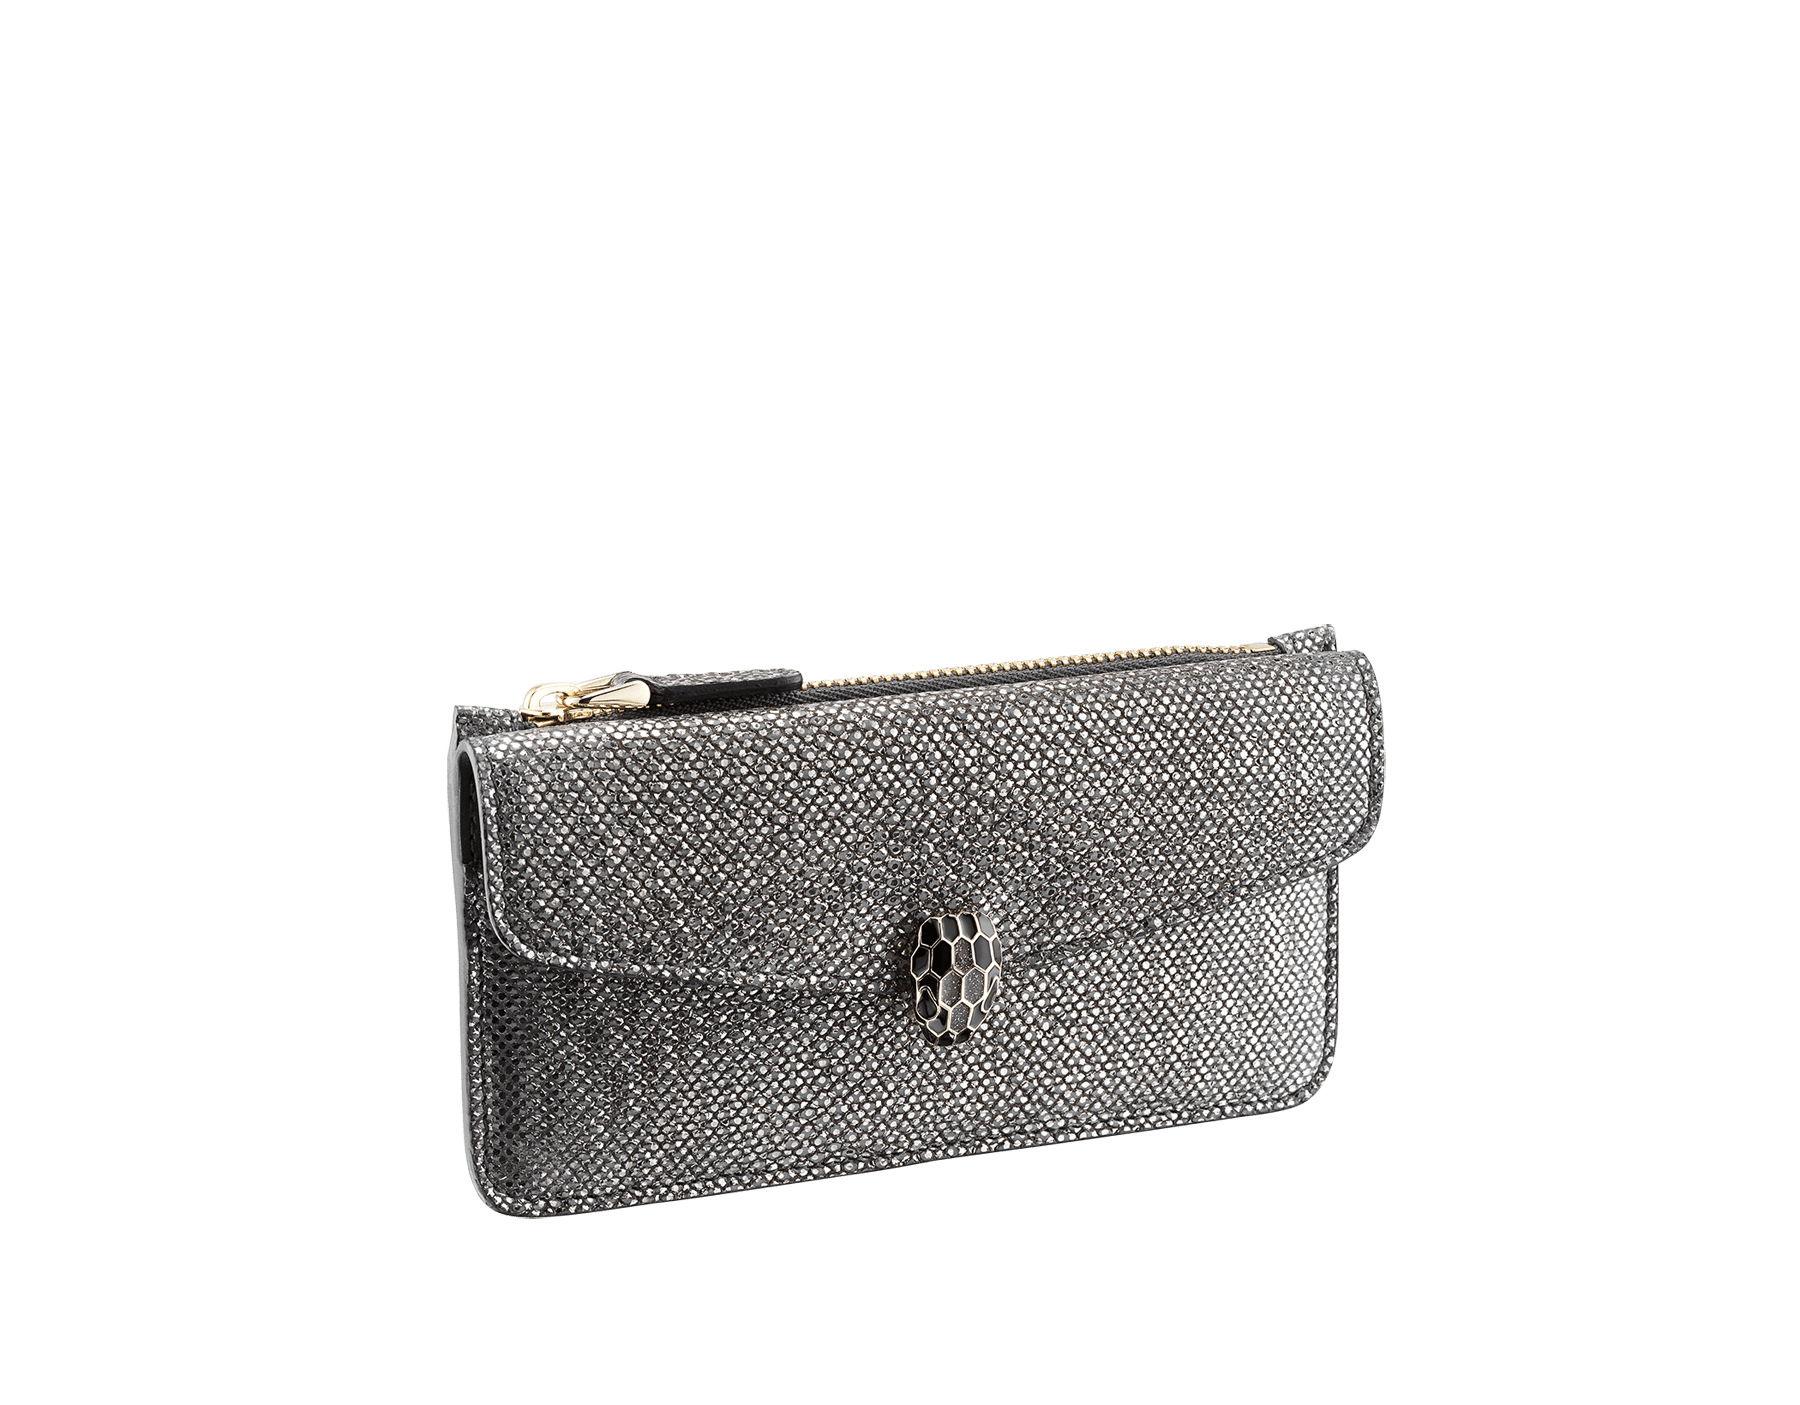 """""""Serpenti Forever"""" card holder in Milky Opal beige metallic karung skin and Milky Opal beige calf leather. Light gold-plated brass iconic snakehead stud closure enamelled in black and glittery Milky Opal beige, with black enamel eyes. SEA-CC-HOLDER-ZIP-MK image 1"""